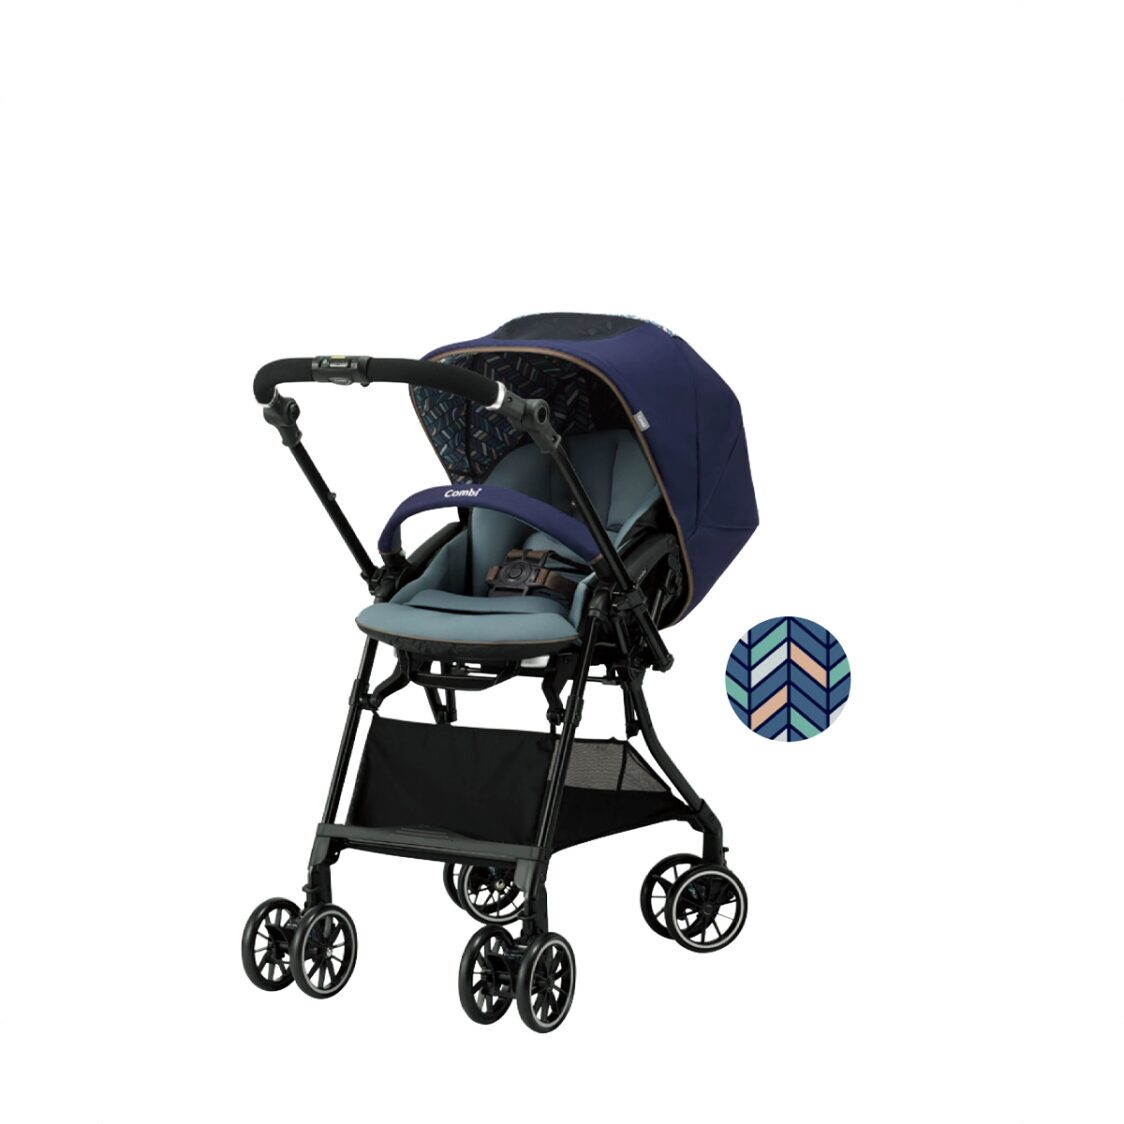 Combi Sugocal Compact Navy Stroller 51kg 136 Months